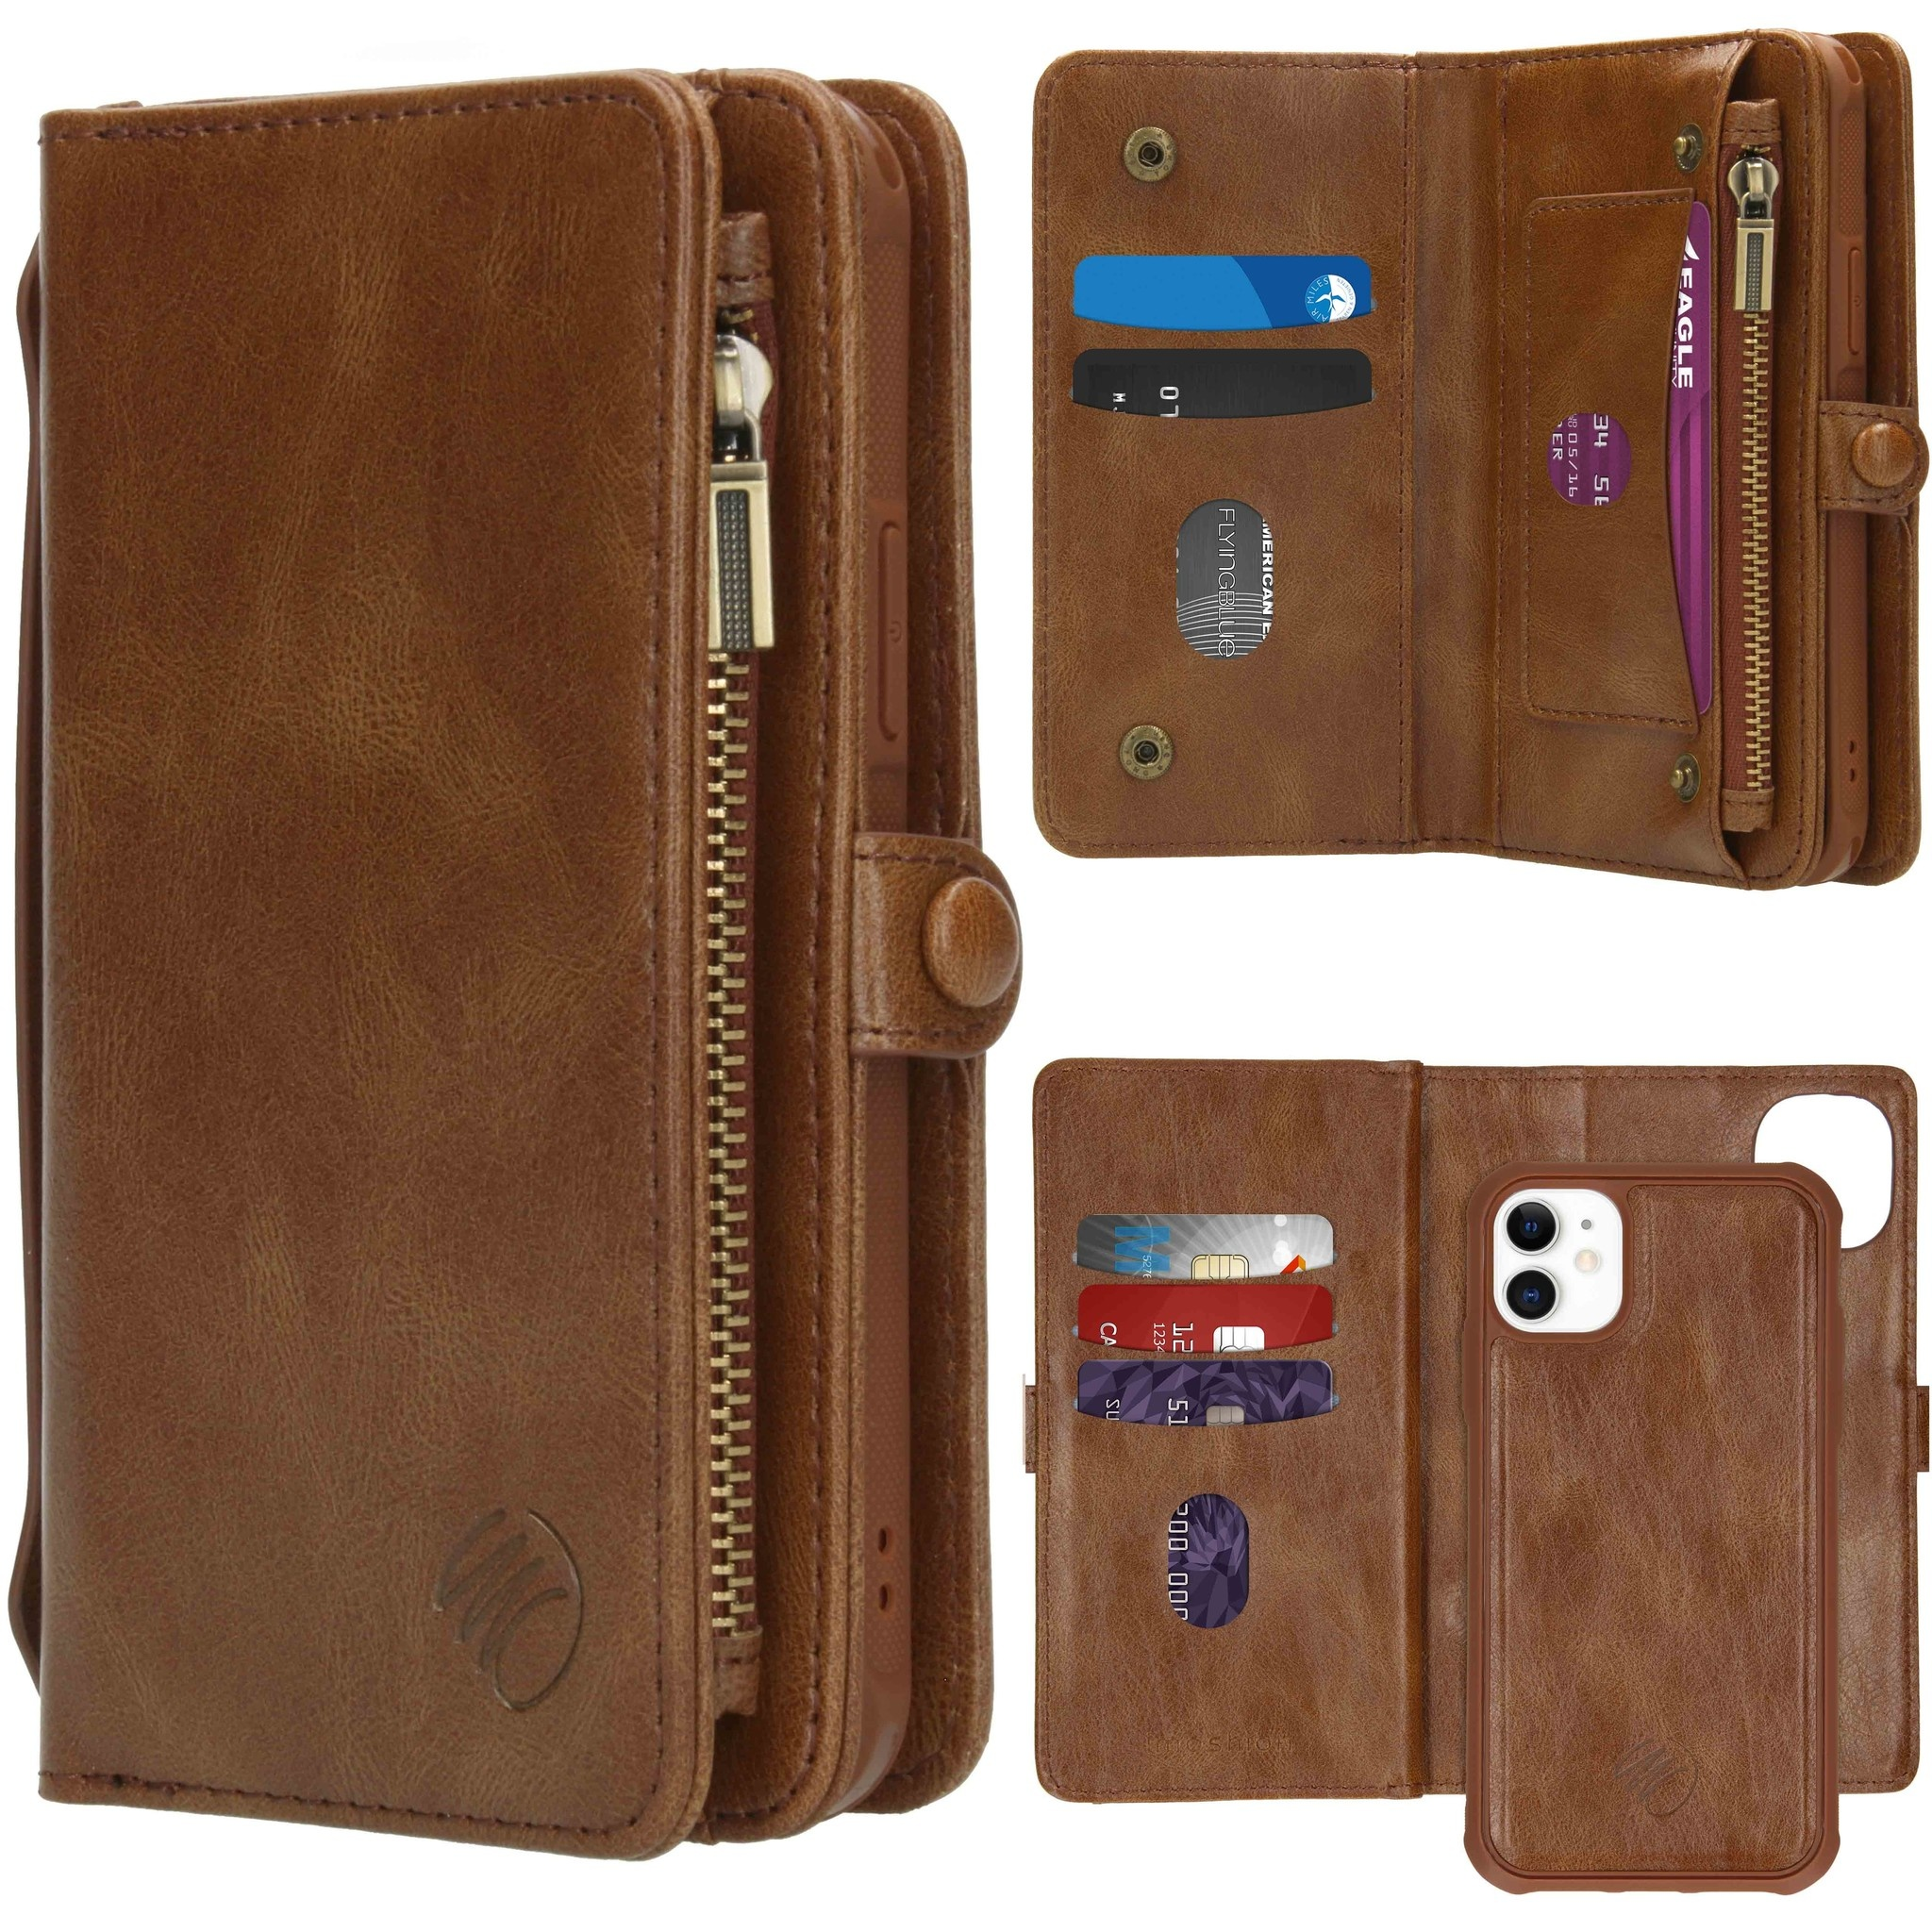 iMoshion 2-in-1 Wallet Booktype iPhone 11 - Bruin